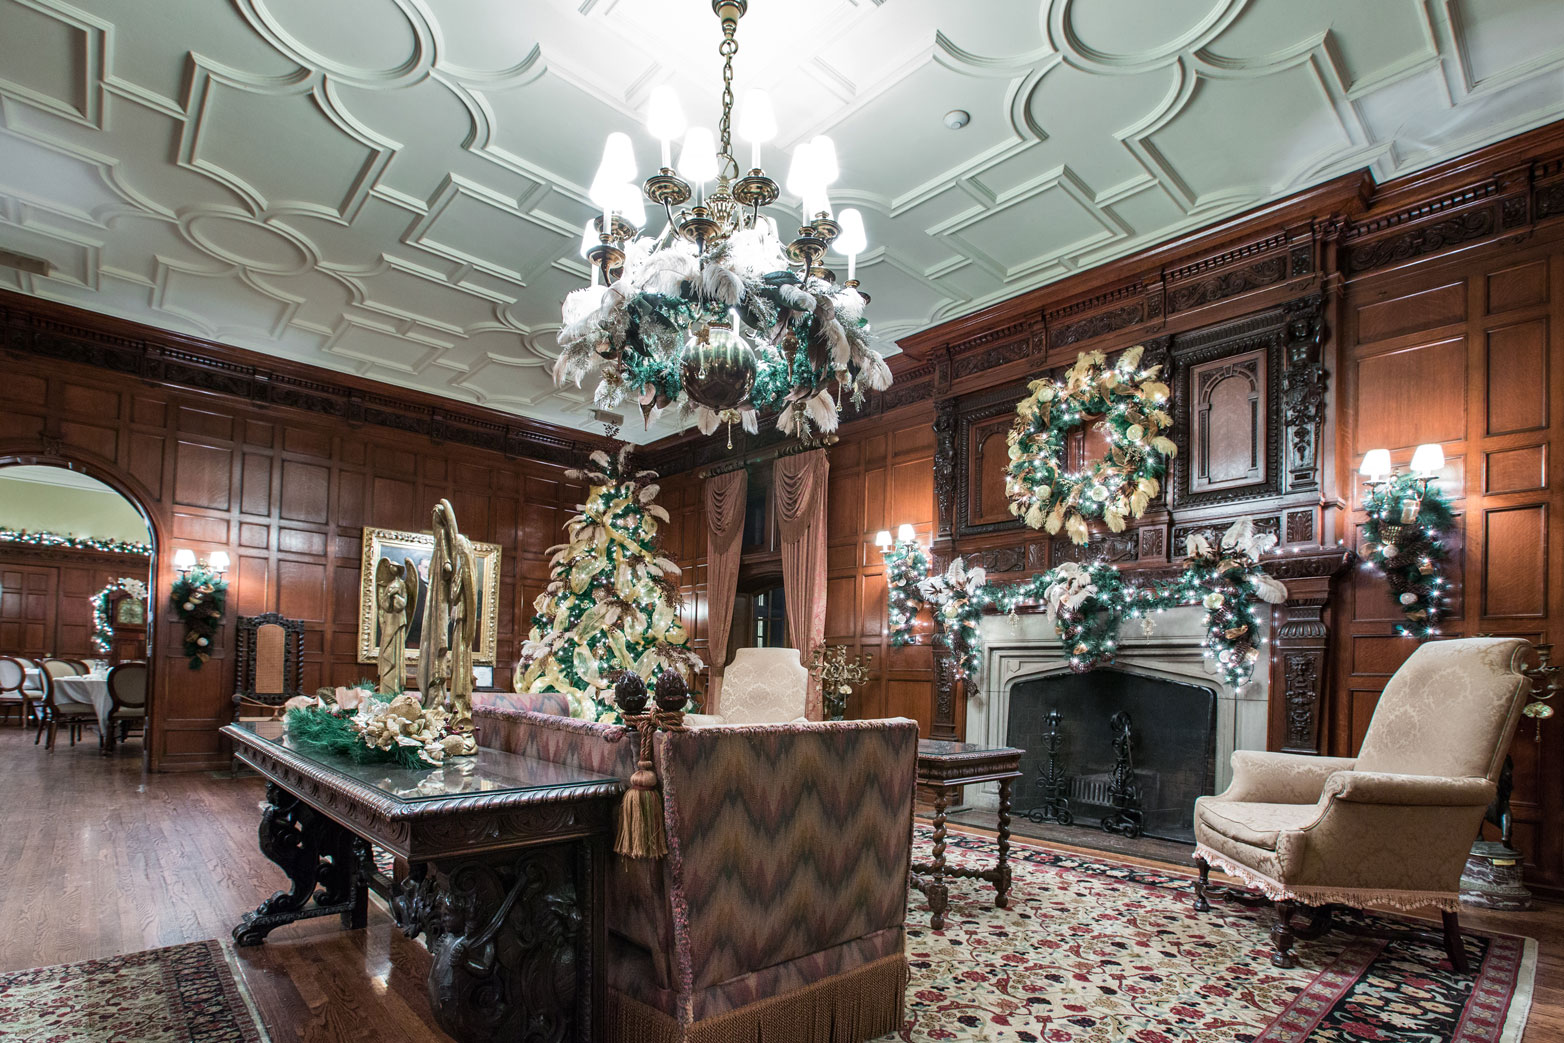 Willistead Manor decorated for the holidays. (Photo courtesy City of Windsor)